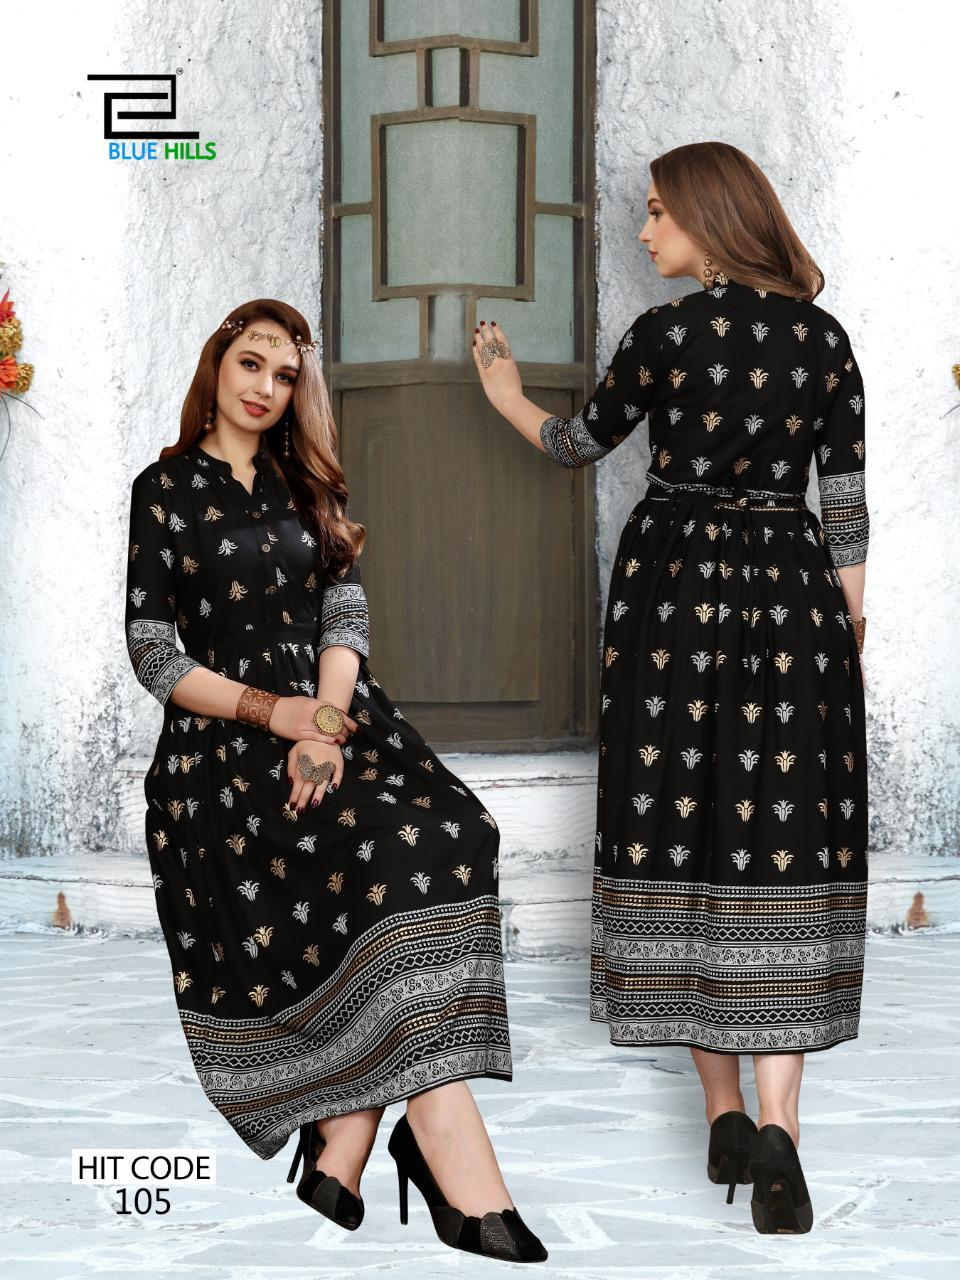 Blue Hills Walkway Hit Kurti Wholesale Catalog 10 Pcs 5 - Blue Hills Walkway Hit Kurti Wholesale Catalog 10 Pcs